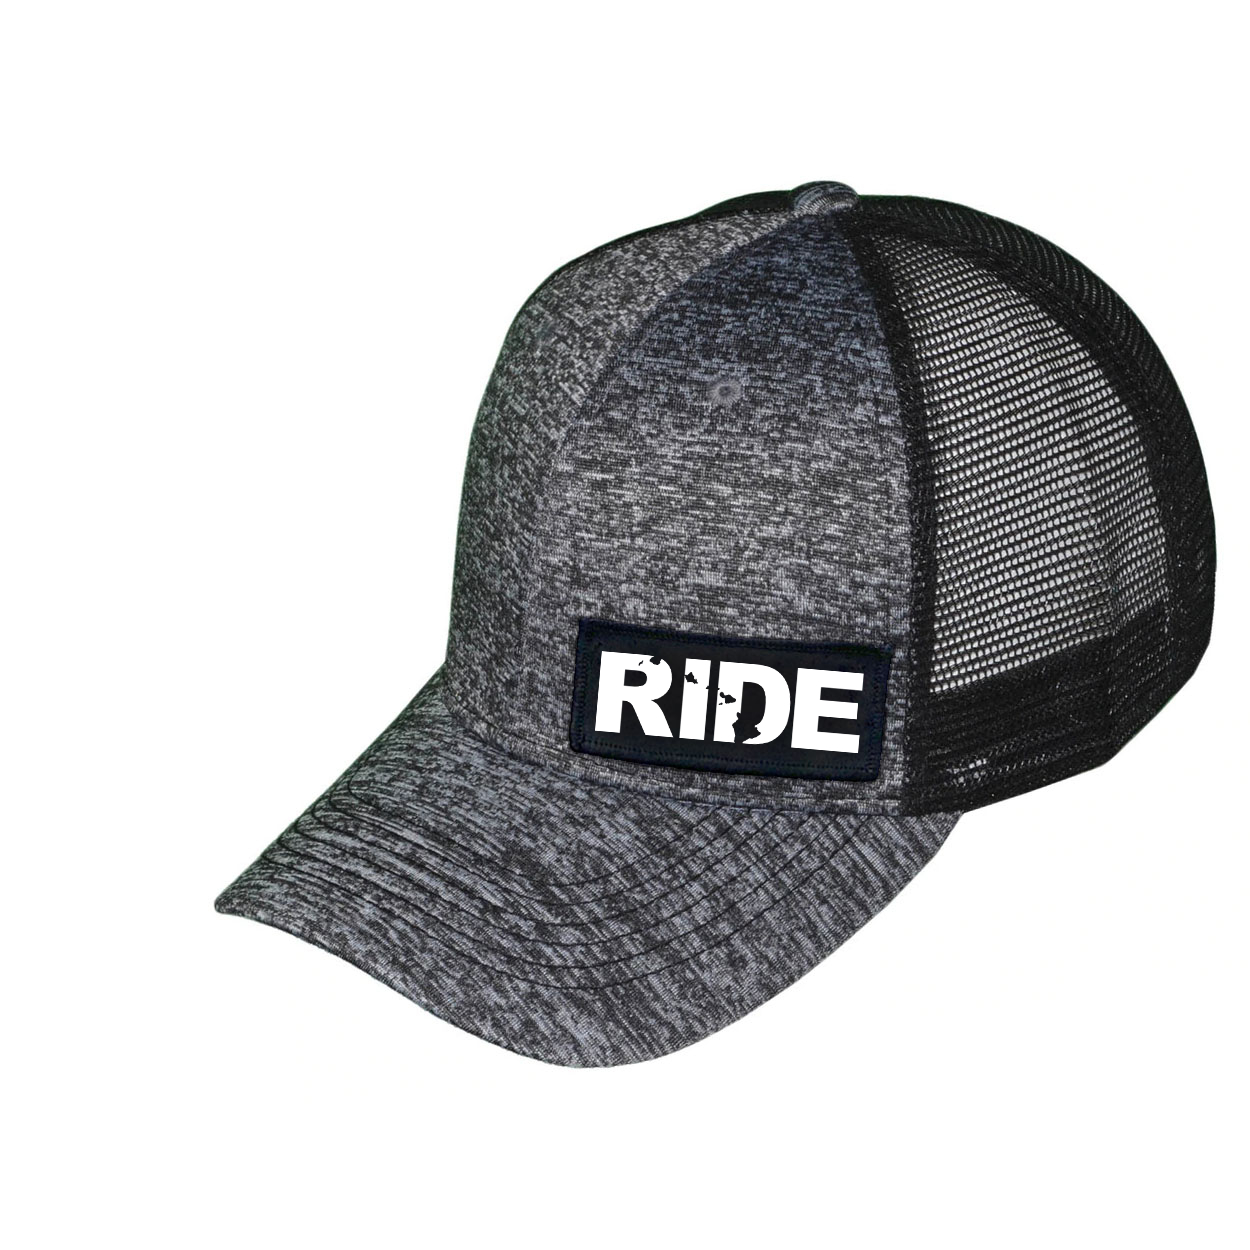 Ride Hawaii Night Out Woven Patch Melange Snapback Trucker Hat Gray/Black (White Logo)